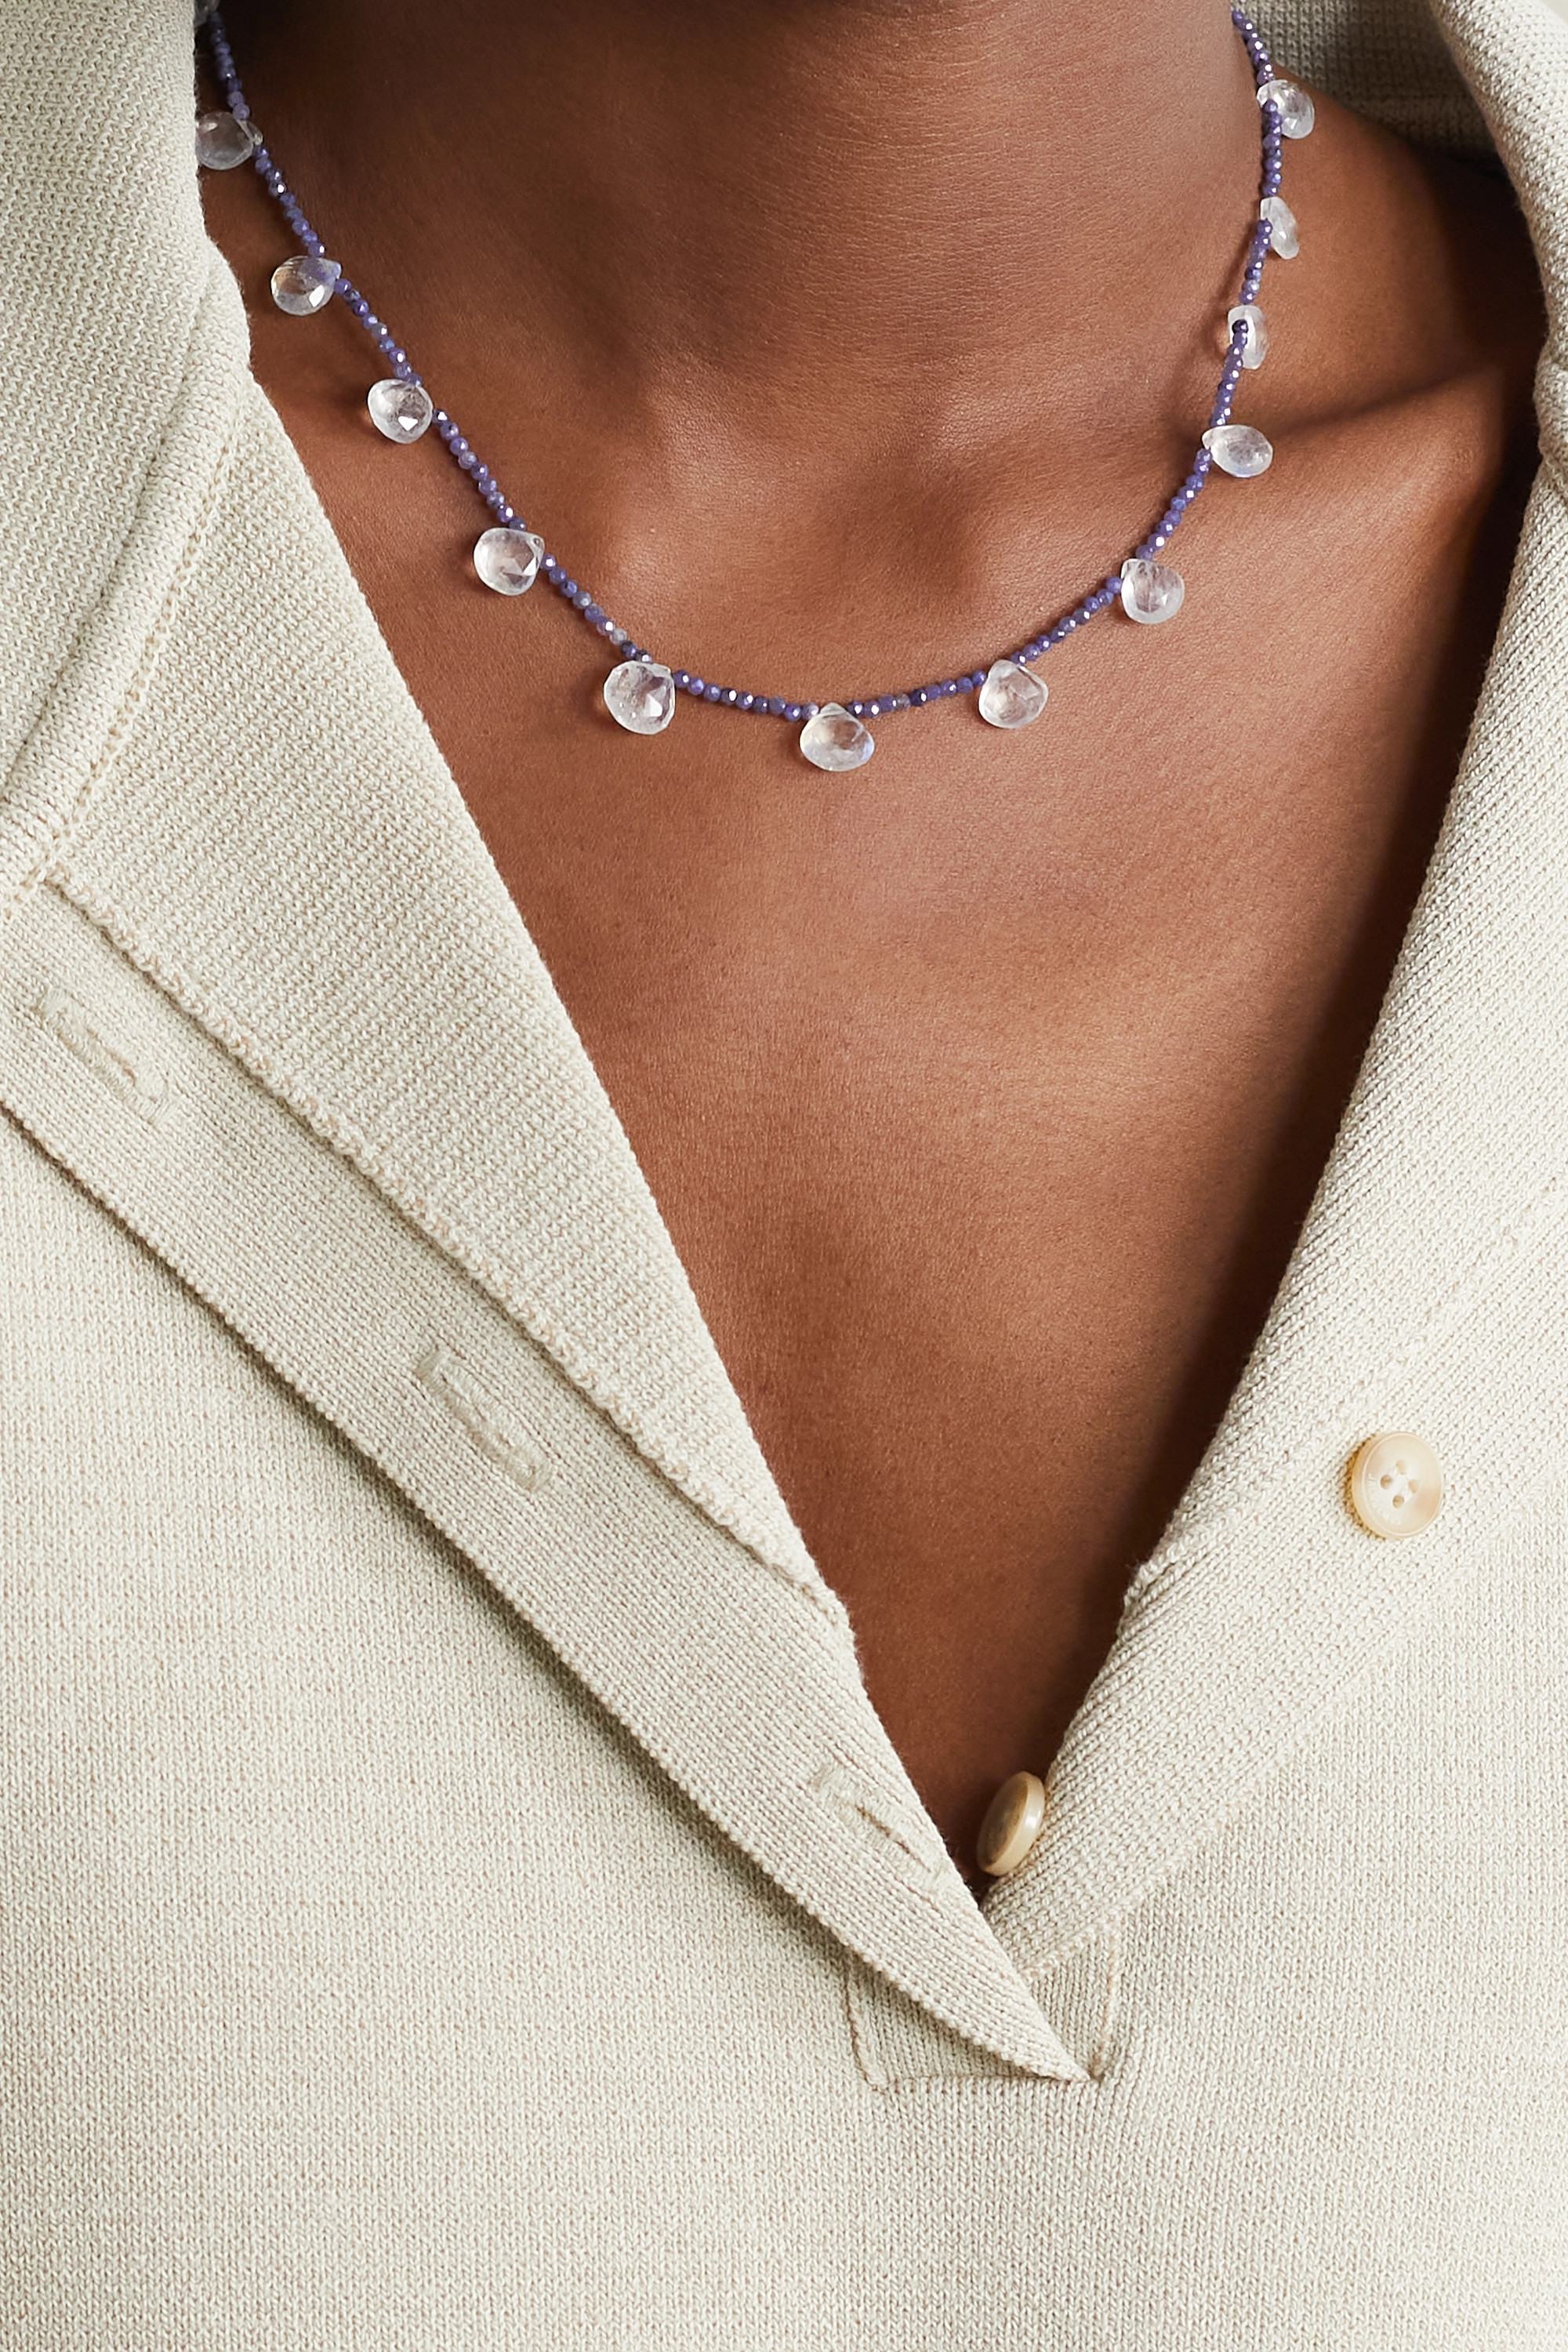 JIA JIA Gold, silverite and moonstone necklace